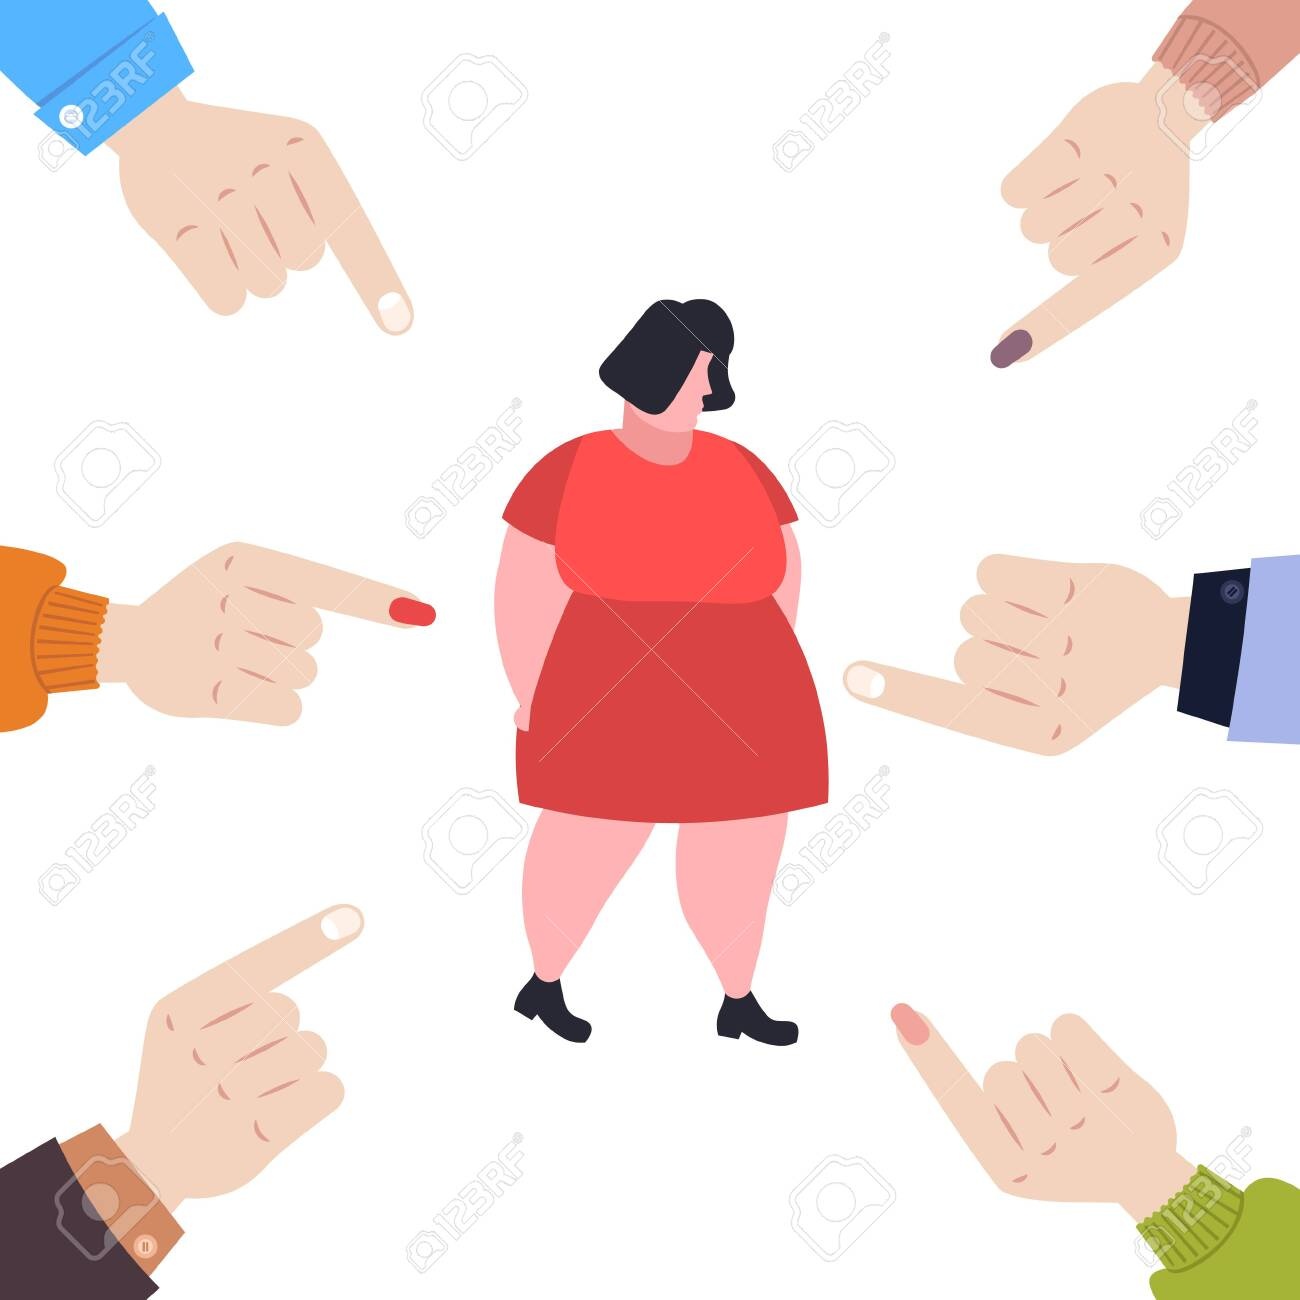 depressed overweight woman being bullied surrounded by fingers pointing on upset fat female character peer violence victim of bullying mocking public disapproval concept full length vector illustration - 137265776